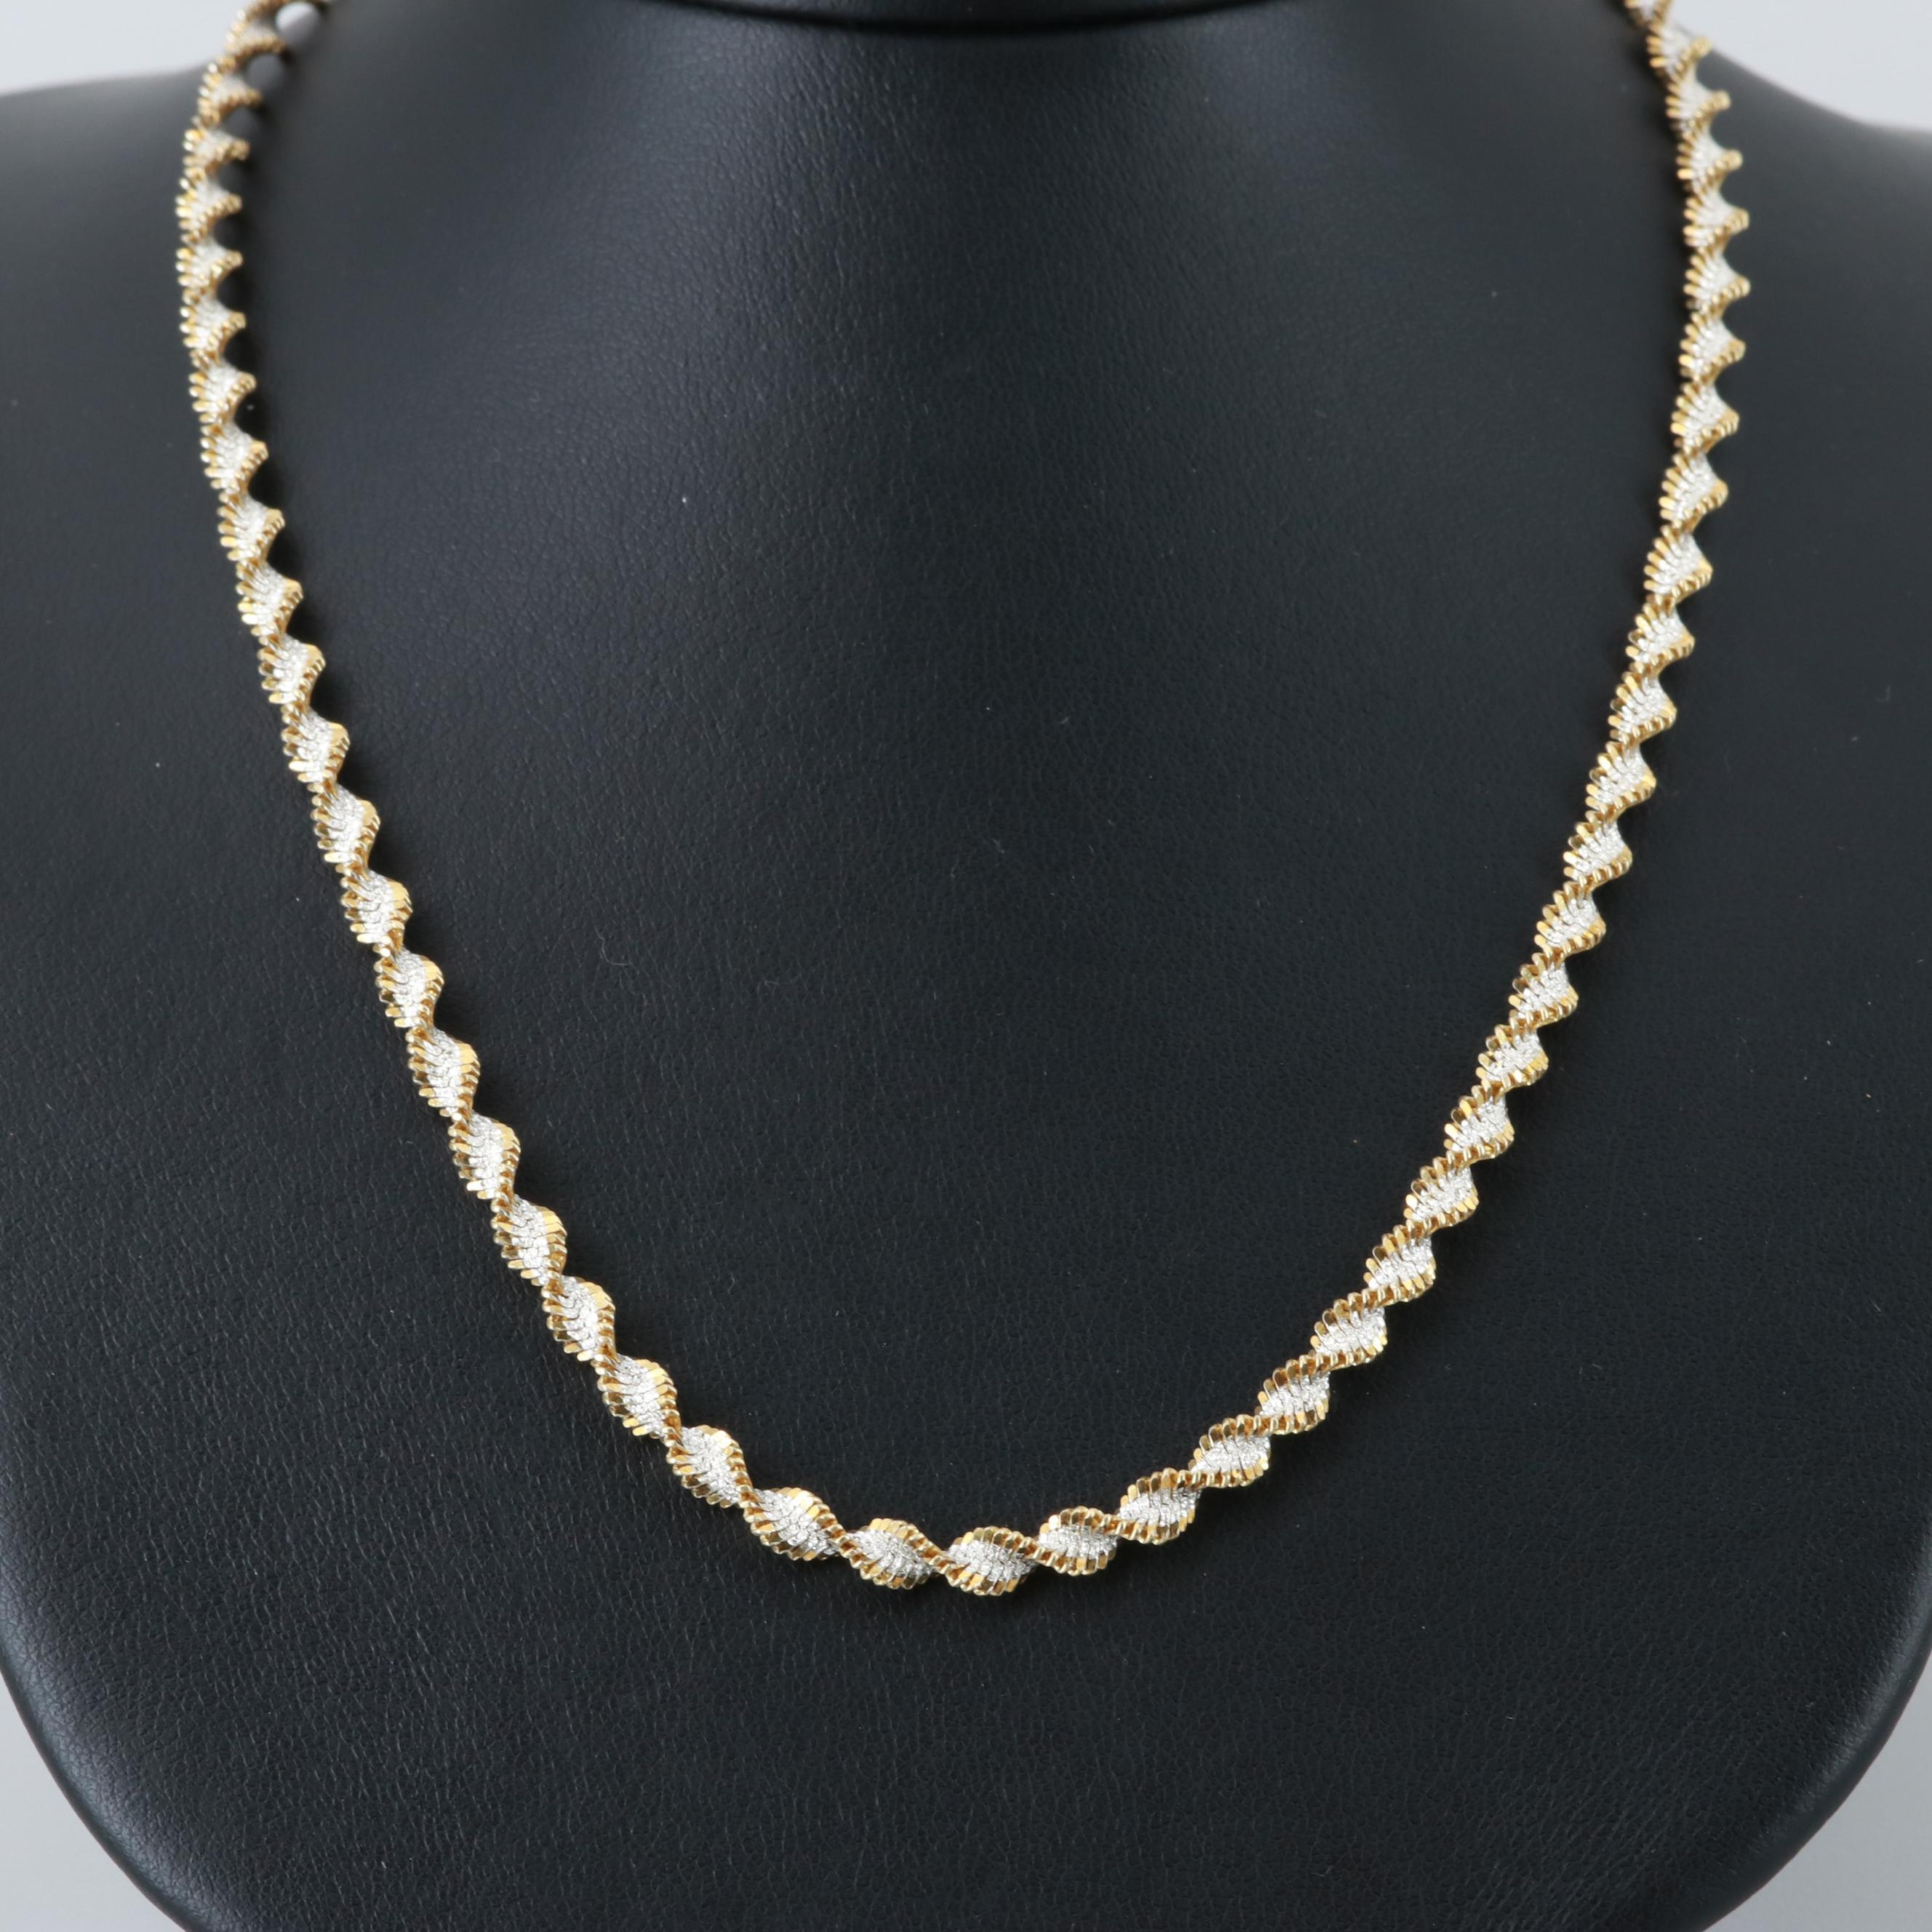 Sterling Silver Twisted Herringbone Necklace with Gold Wash Accents